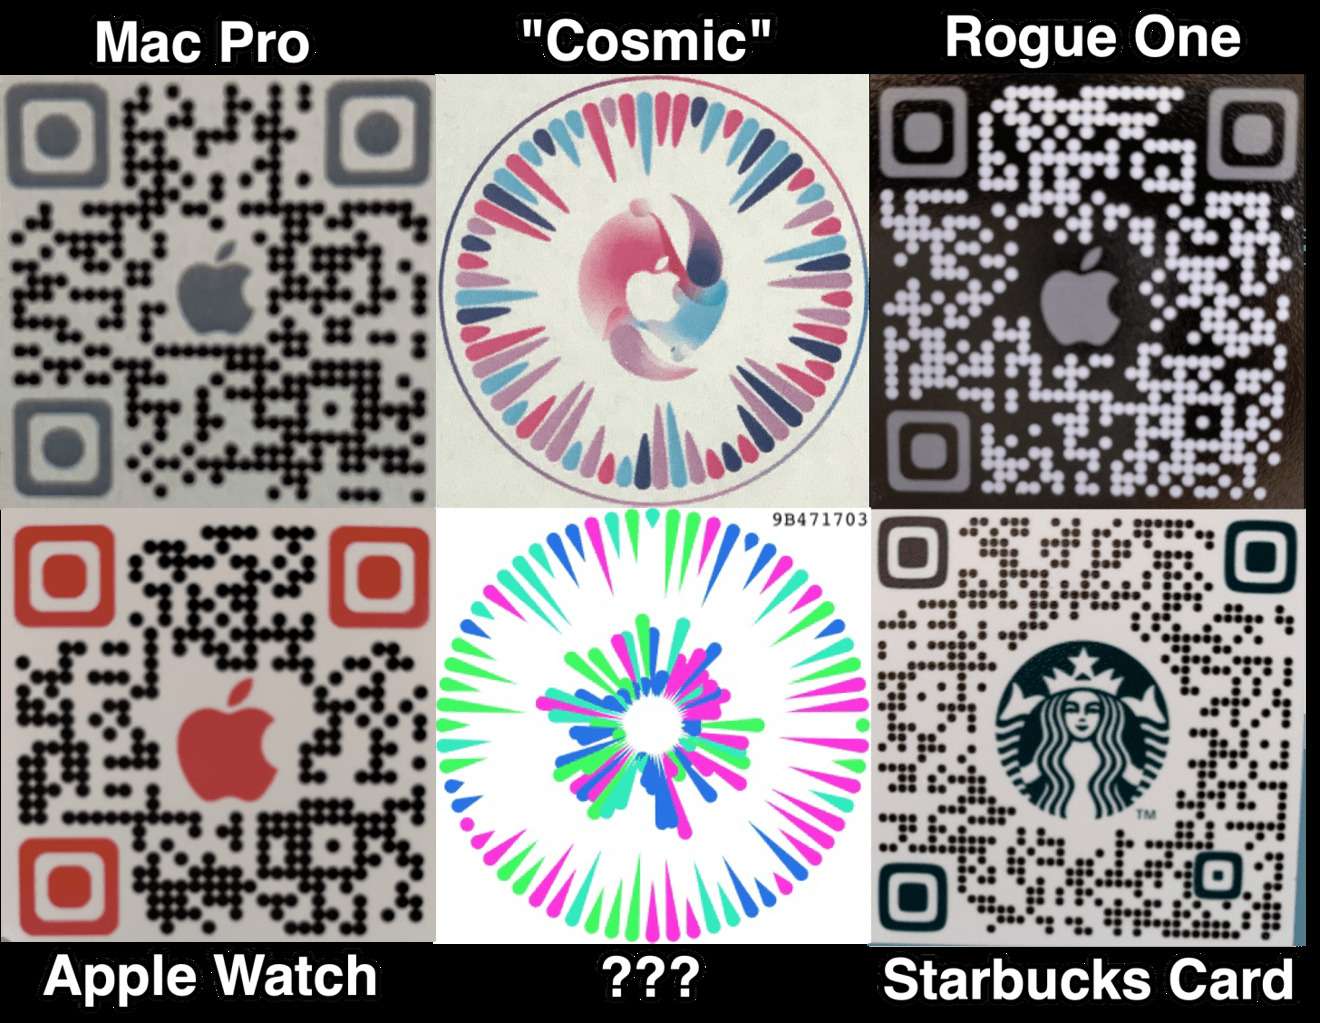 New circular Apple QR codes, as well as more traditional QR codes, for use in the Gobi app. Credit: Josh Constine